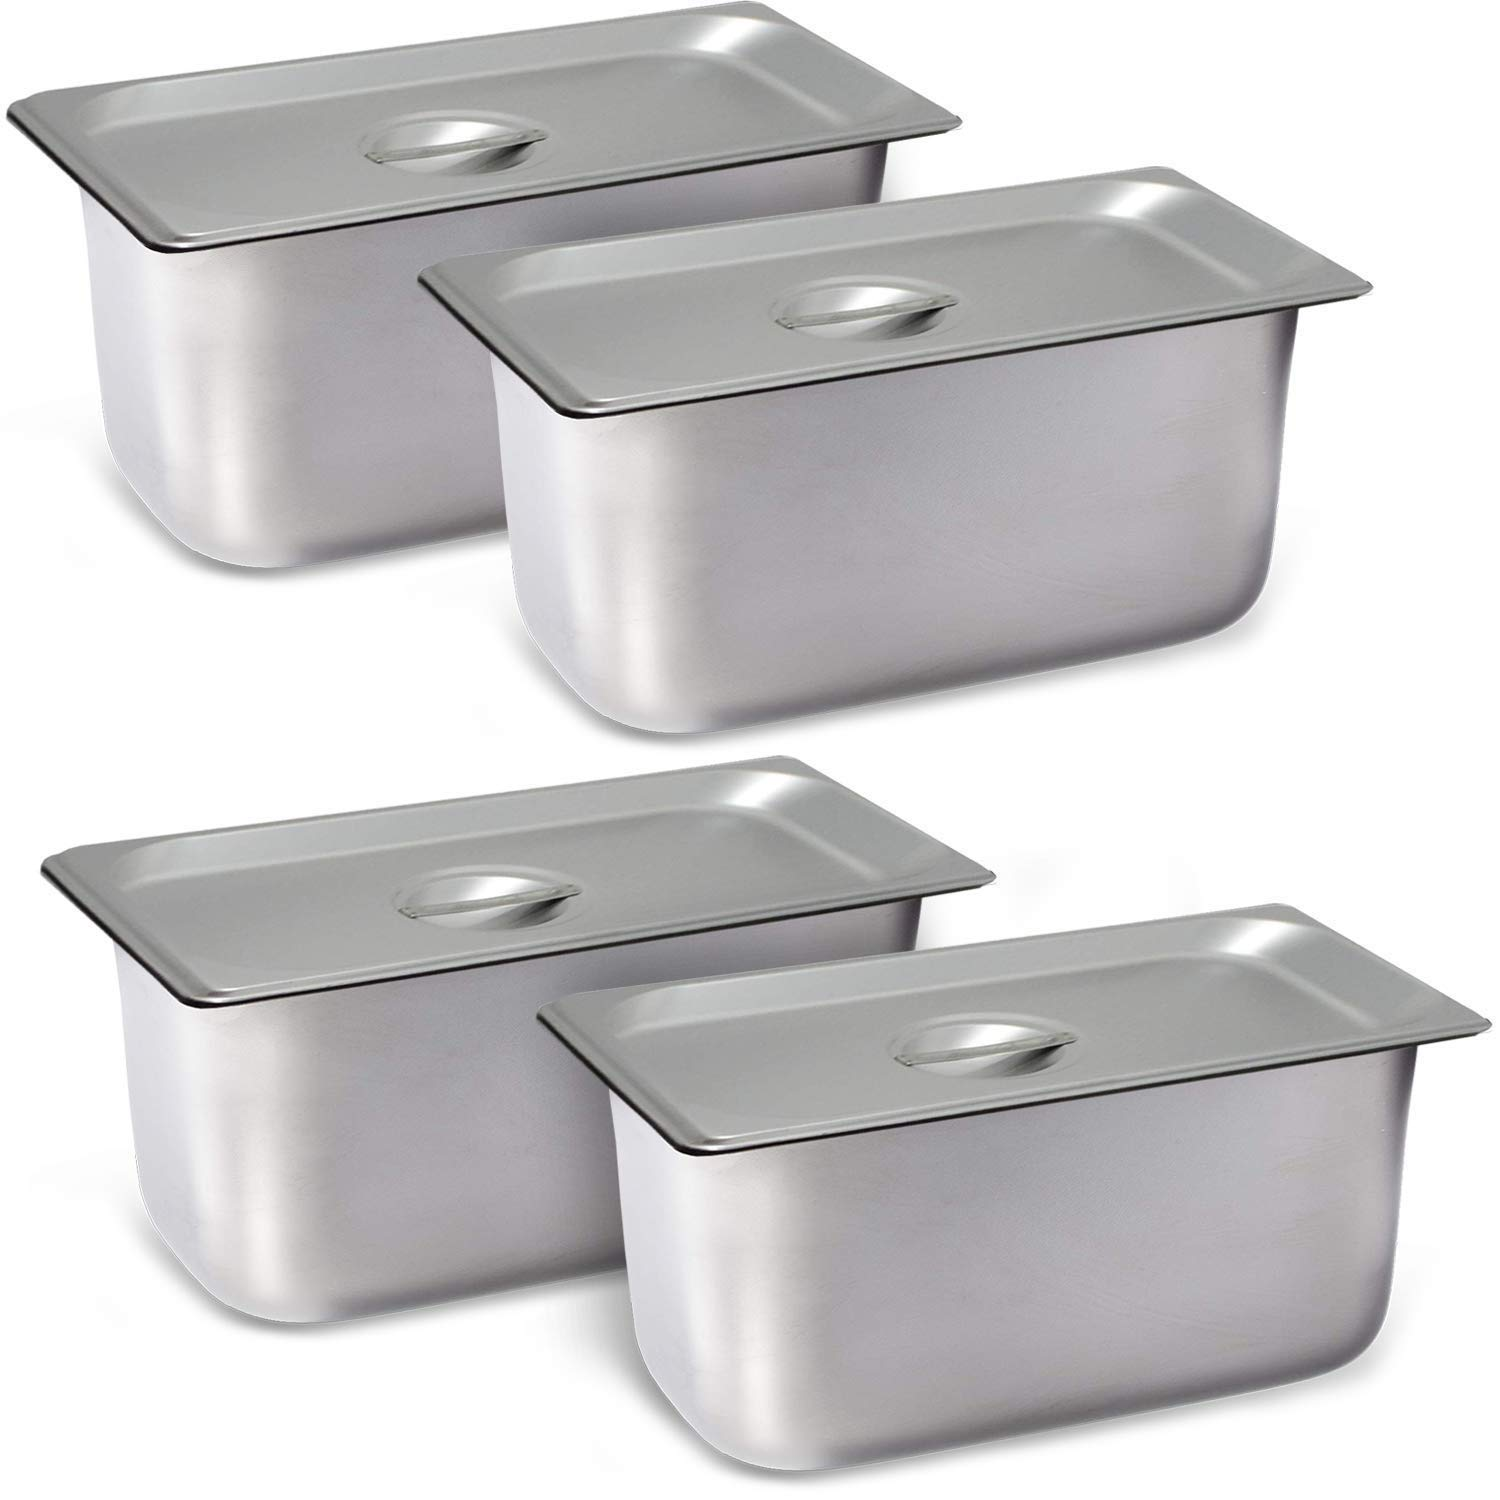 "4 Pack Steam Table Pan Third Size with Cover, Hotel Pan is 6"" Deep, Made from 25 Gauge Stainless Steel, NSF Listed"